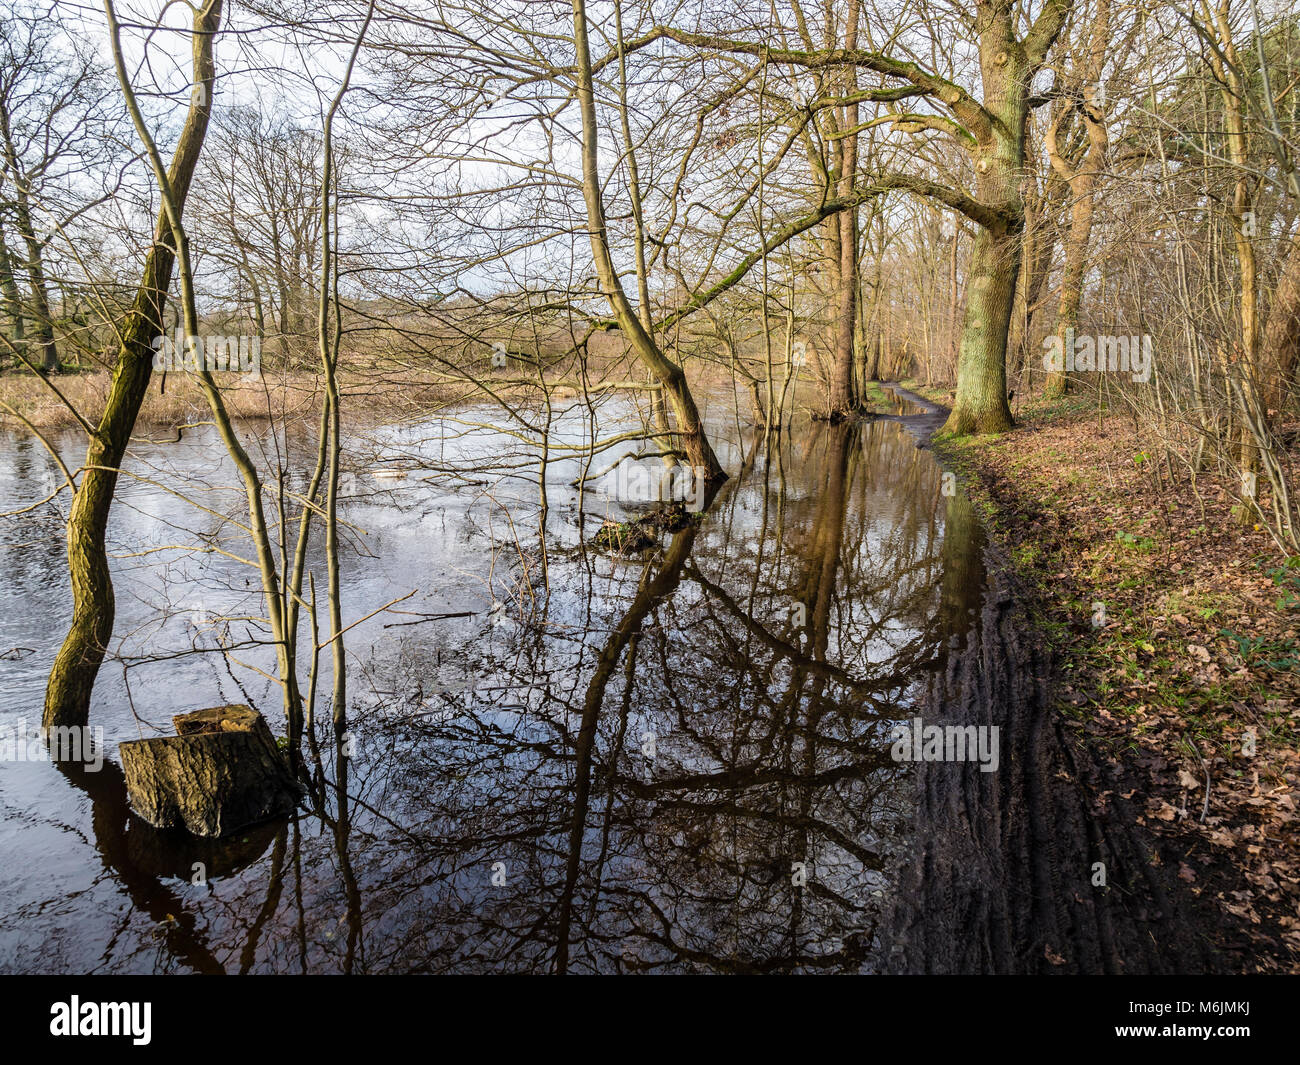 Flooded path along river Lachte, seen from bicycle, Celle, Germany Stock Photo